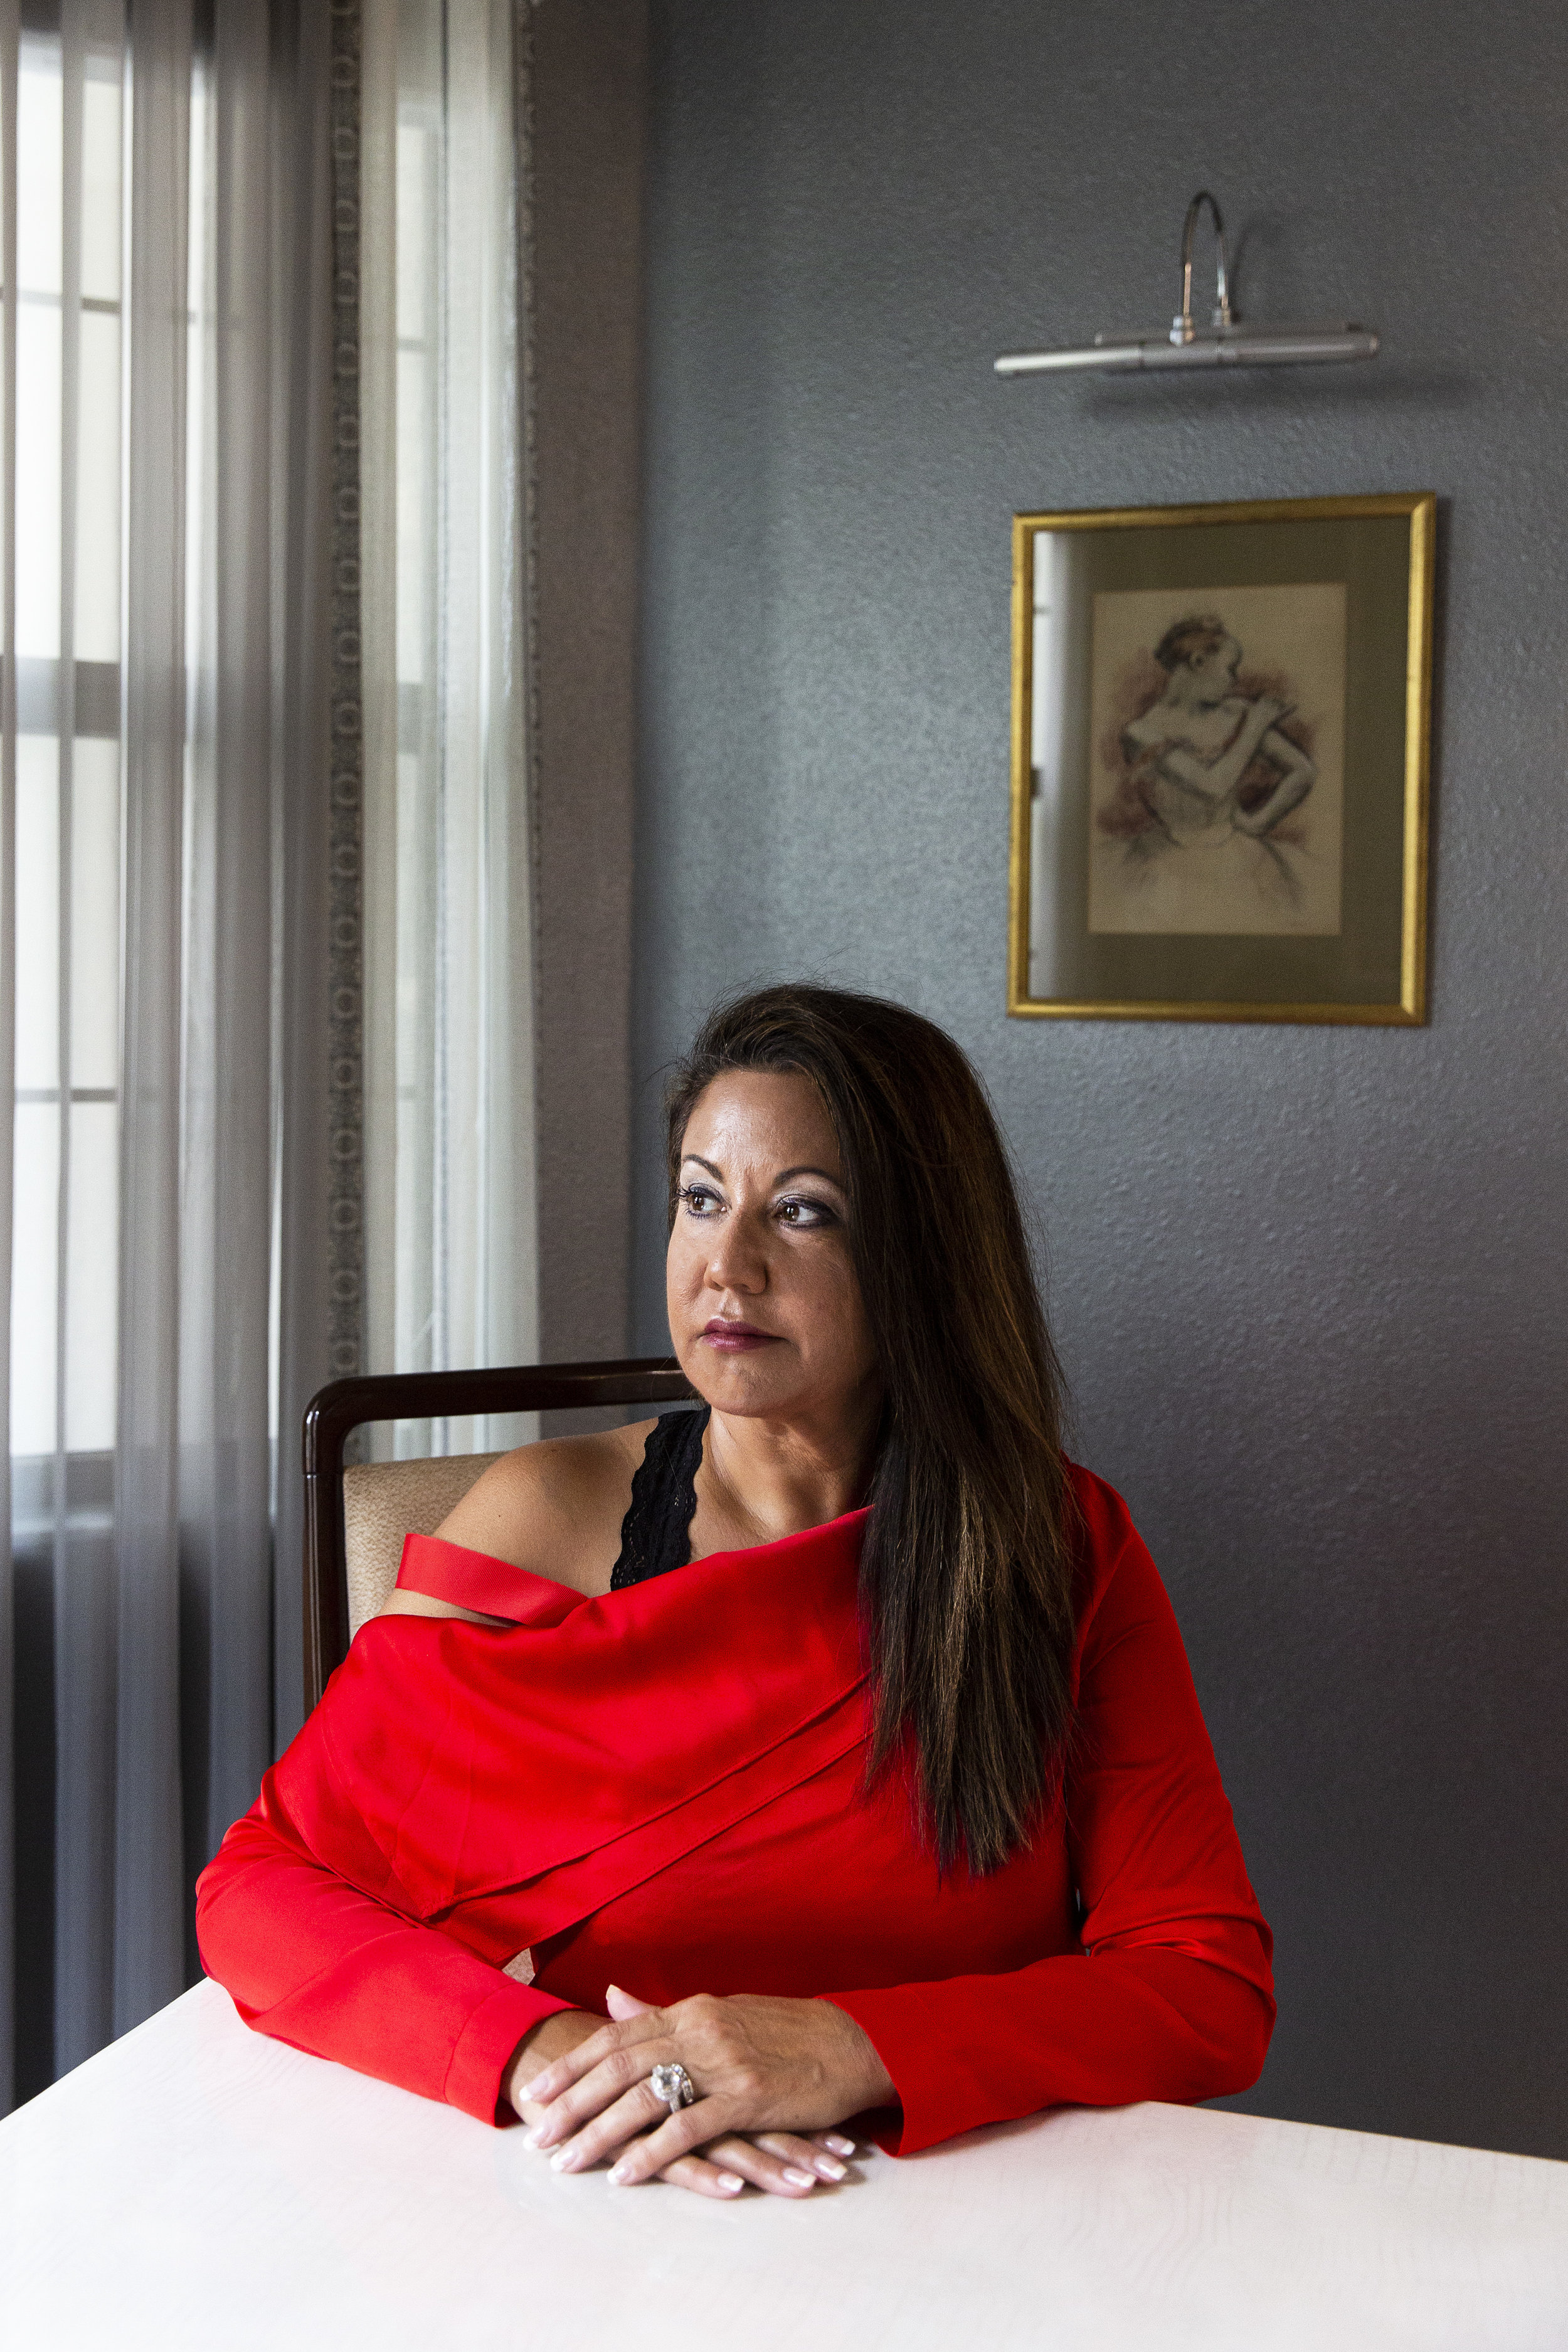 "Amal Bernal at her home in North Naples on Wednesday, August 1, 2018. Bernal's ex-husband abused her physically, emotionally and financially for twenty years. Financial abuse, defined as 'coercive control' by the Centers for Disease Control, is often the unseen and debilitating perpetuation of all other types of abuse. ""To me, it's just as bad as any other kind of abuse because it's how they control you,"" Bernal said."